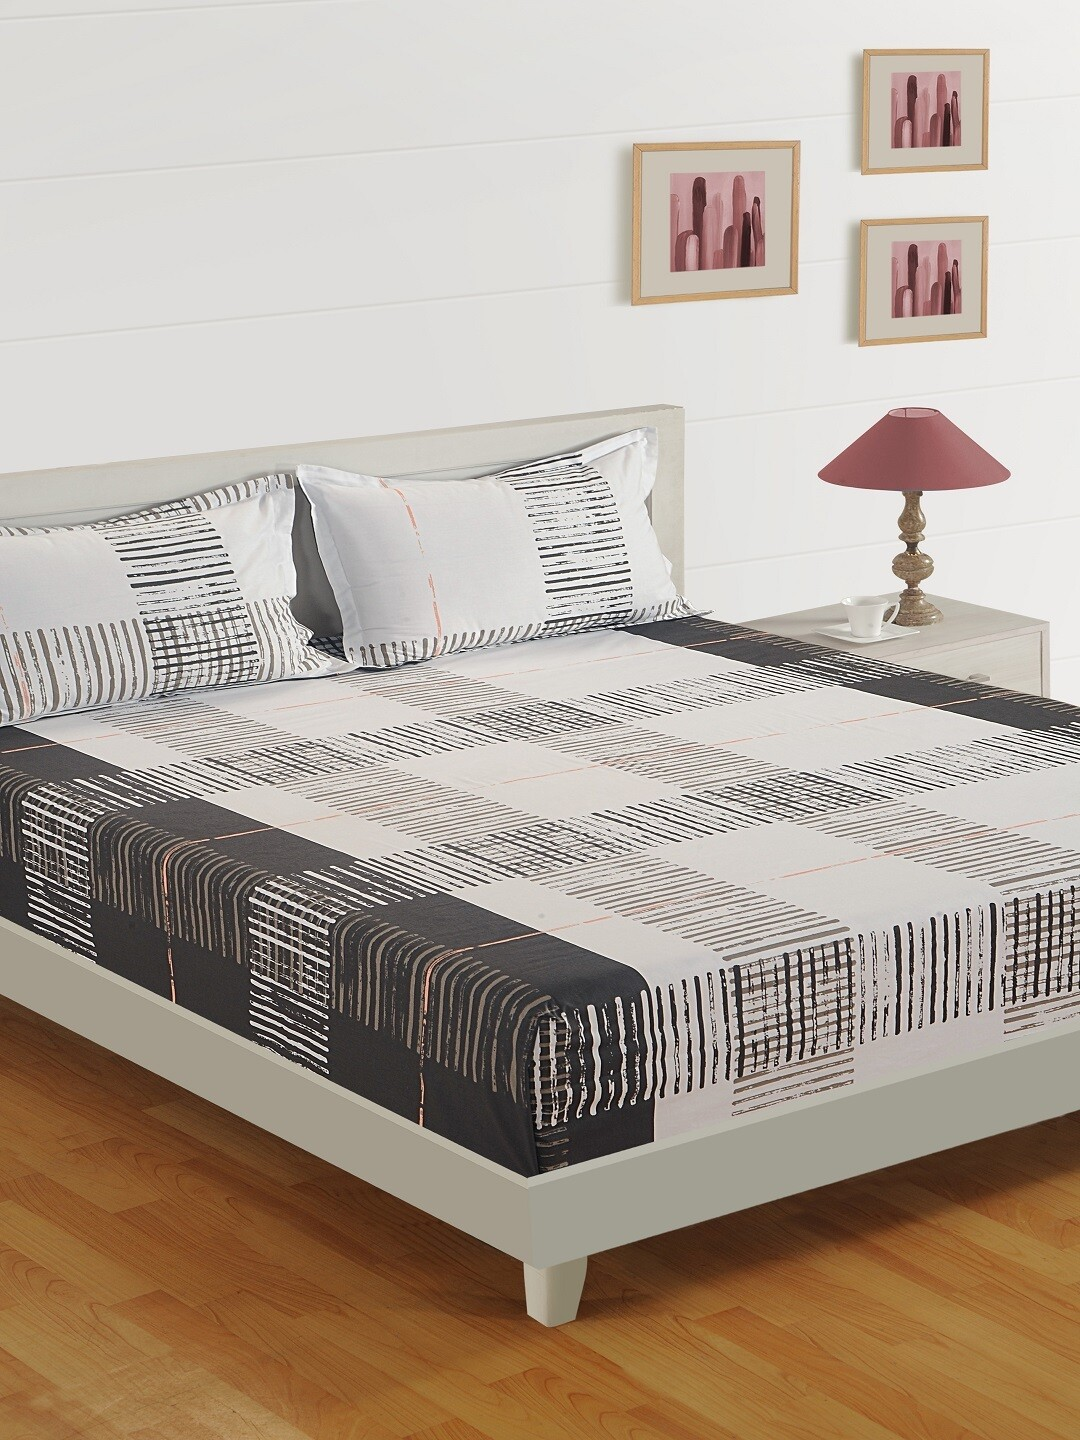 Swayam Black & White Lines 120 TC Cotton Double Bedsheet with 2 Pillow Covers